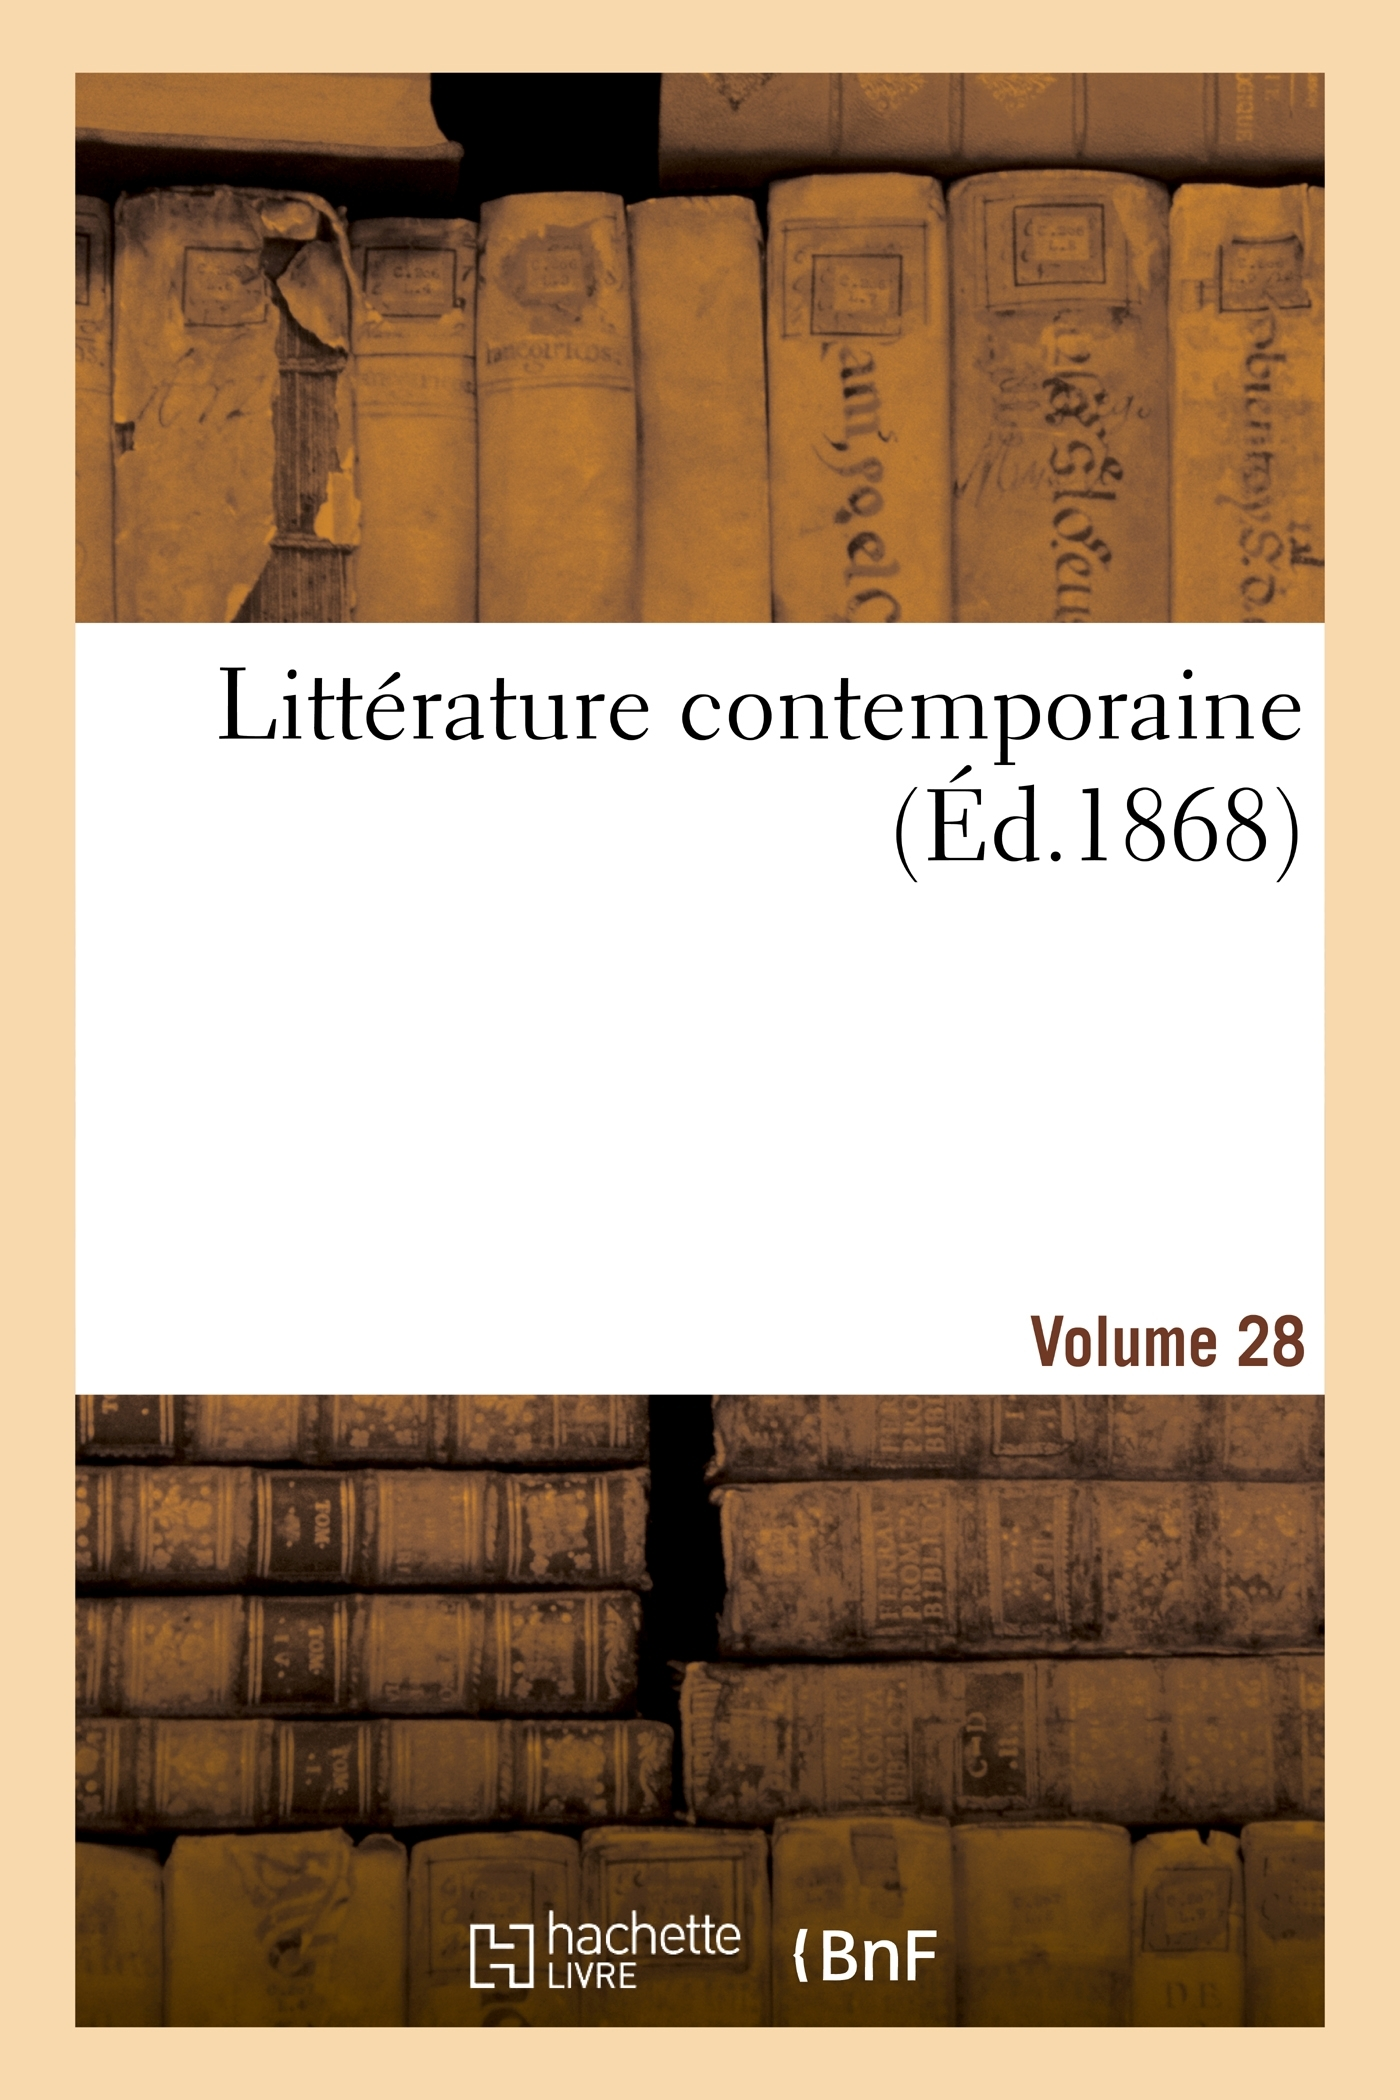 LITTERATURE CONTEMPORAINE. VOLUME 28